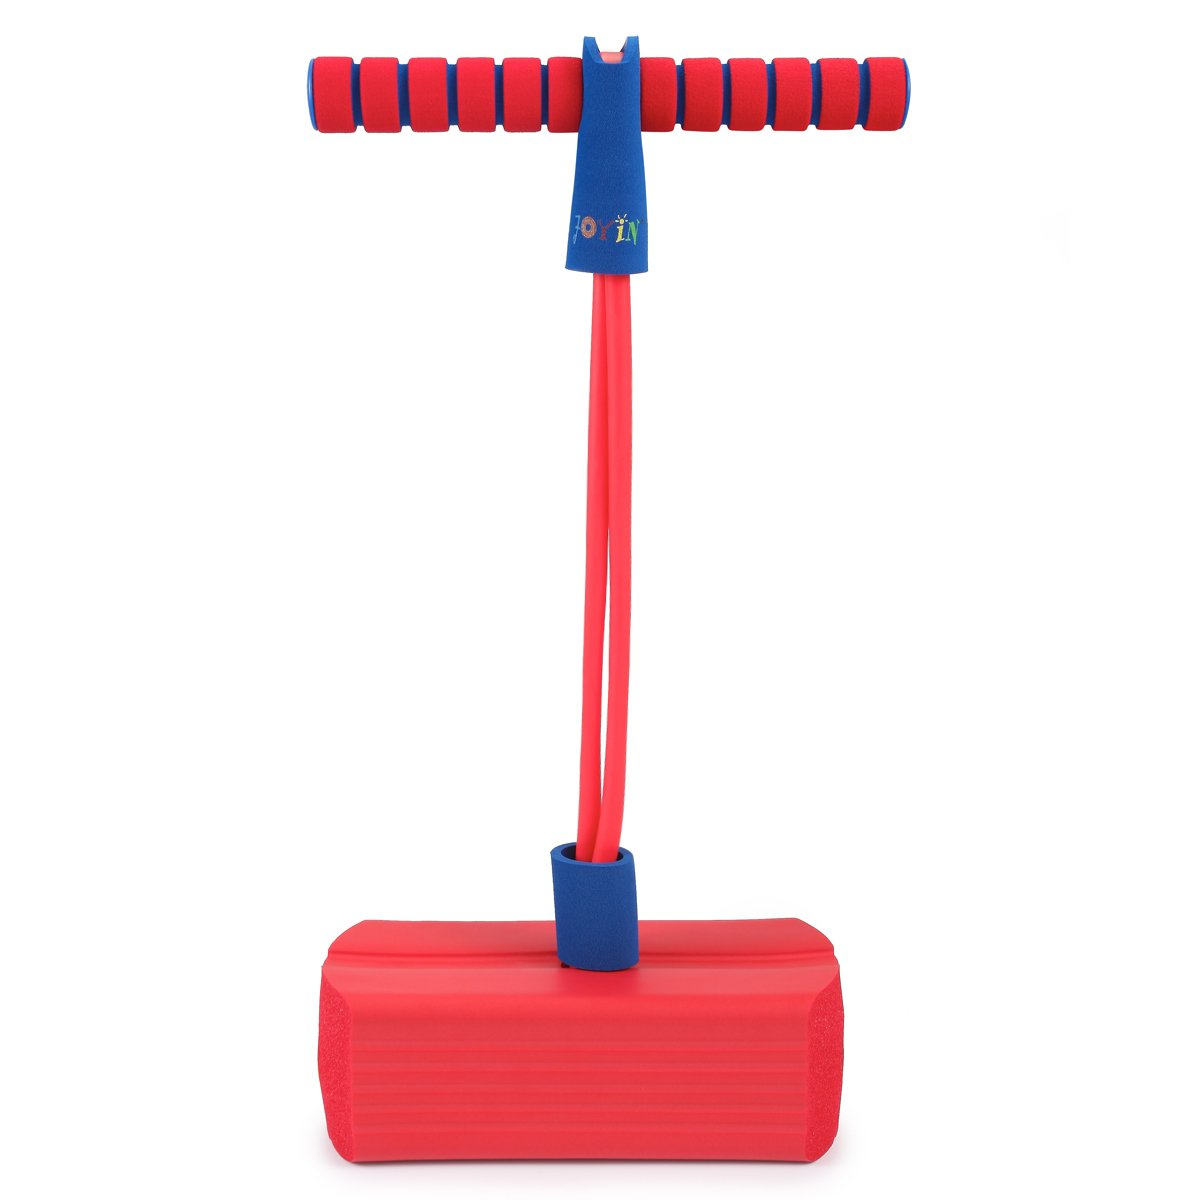 Joyin Toy Foam Pogo Jumper Safe and Fun Play, All sizes, 250 Pound Capacity (red)